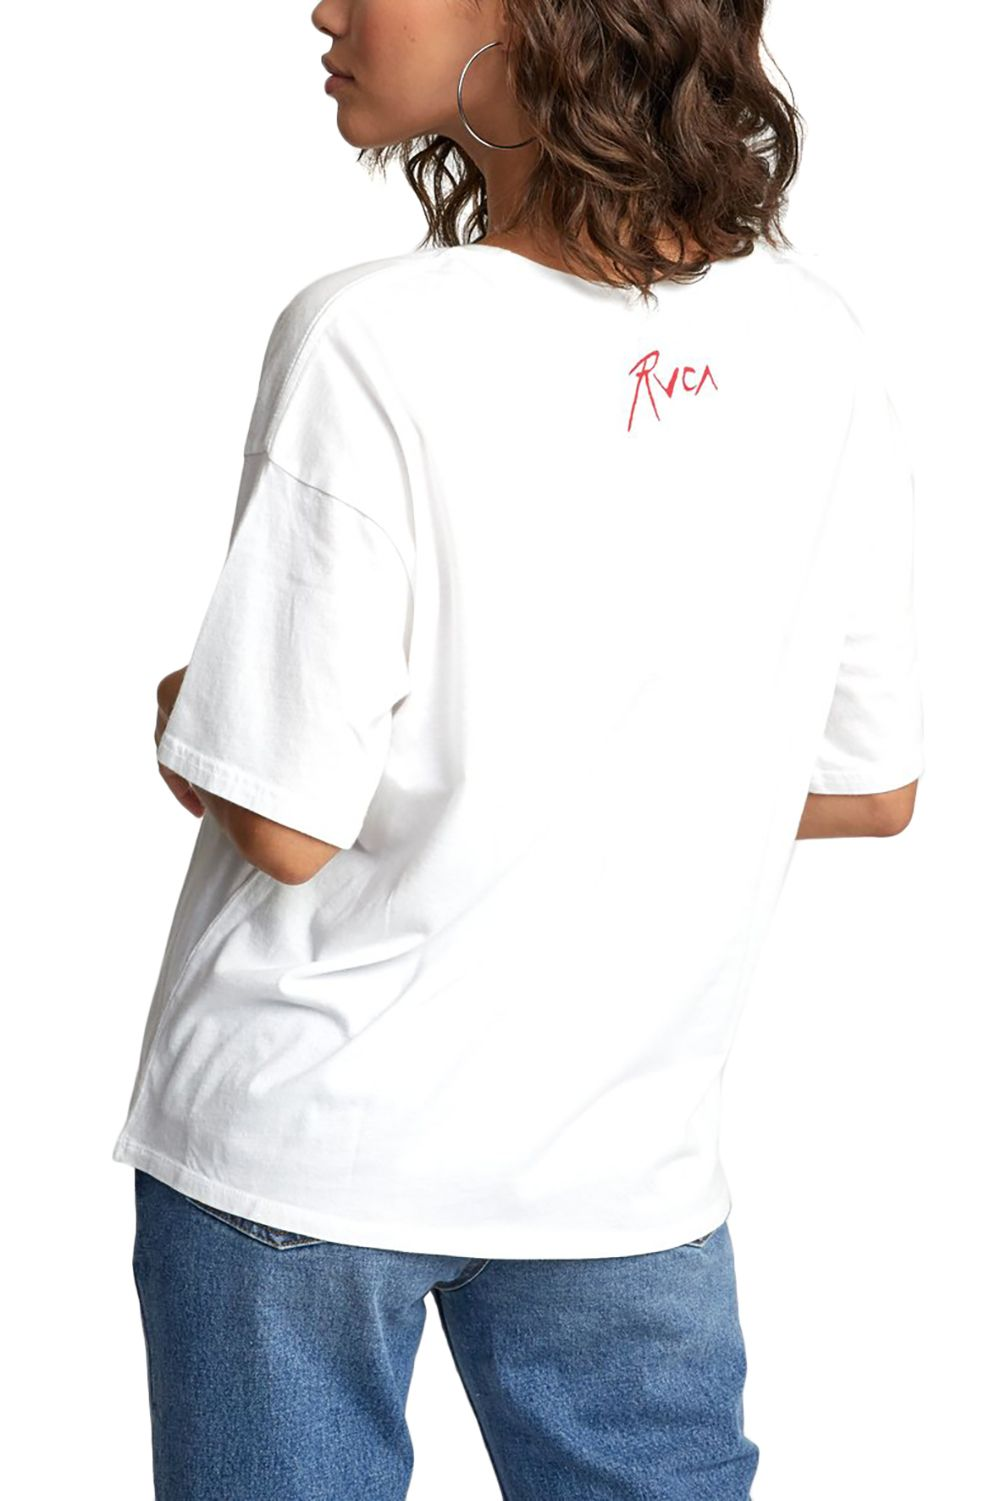 T-Shirt RVCA THE GORGEOUS HUSSY STACEY ROZICH Antique White